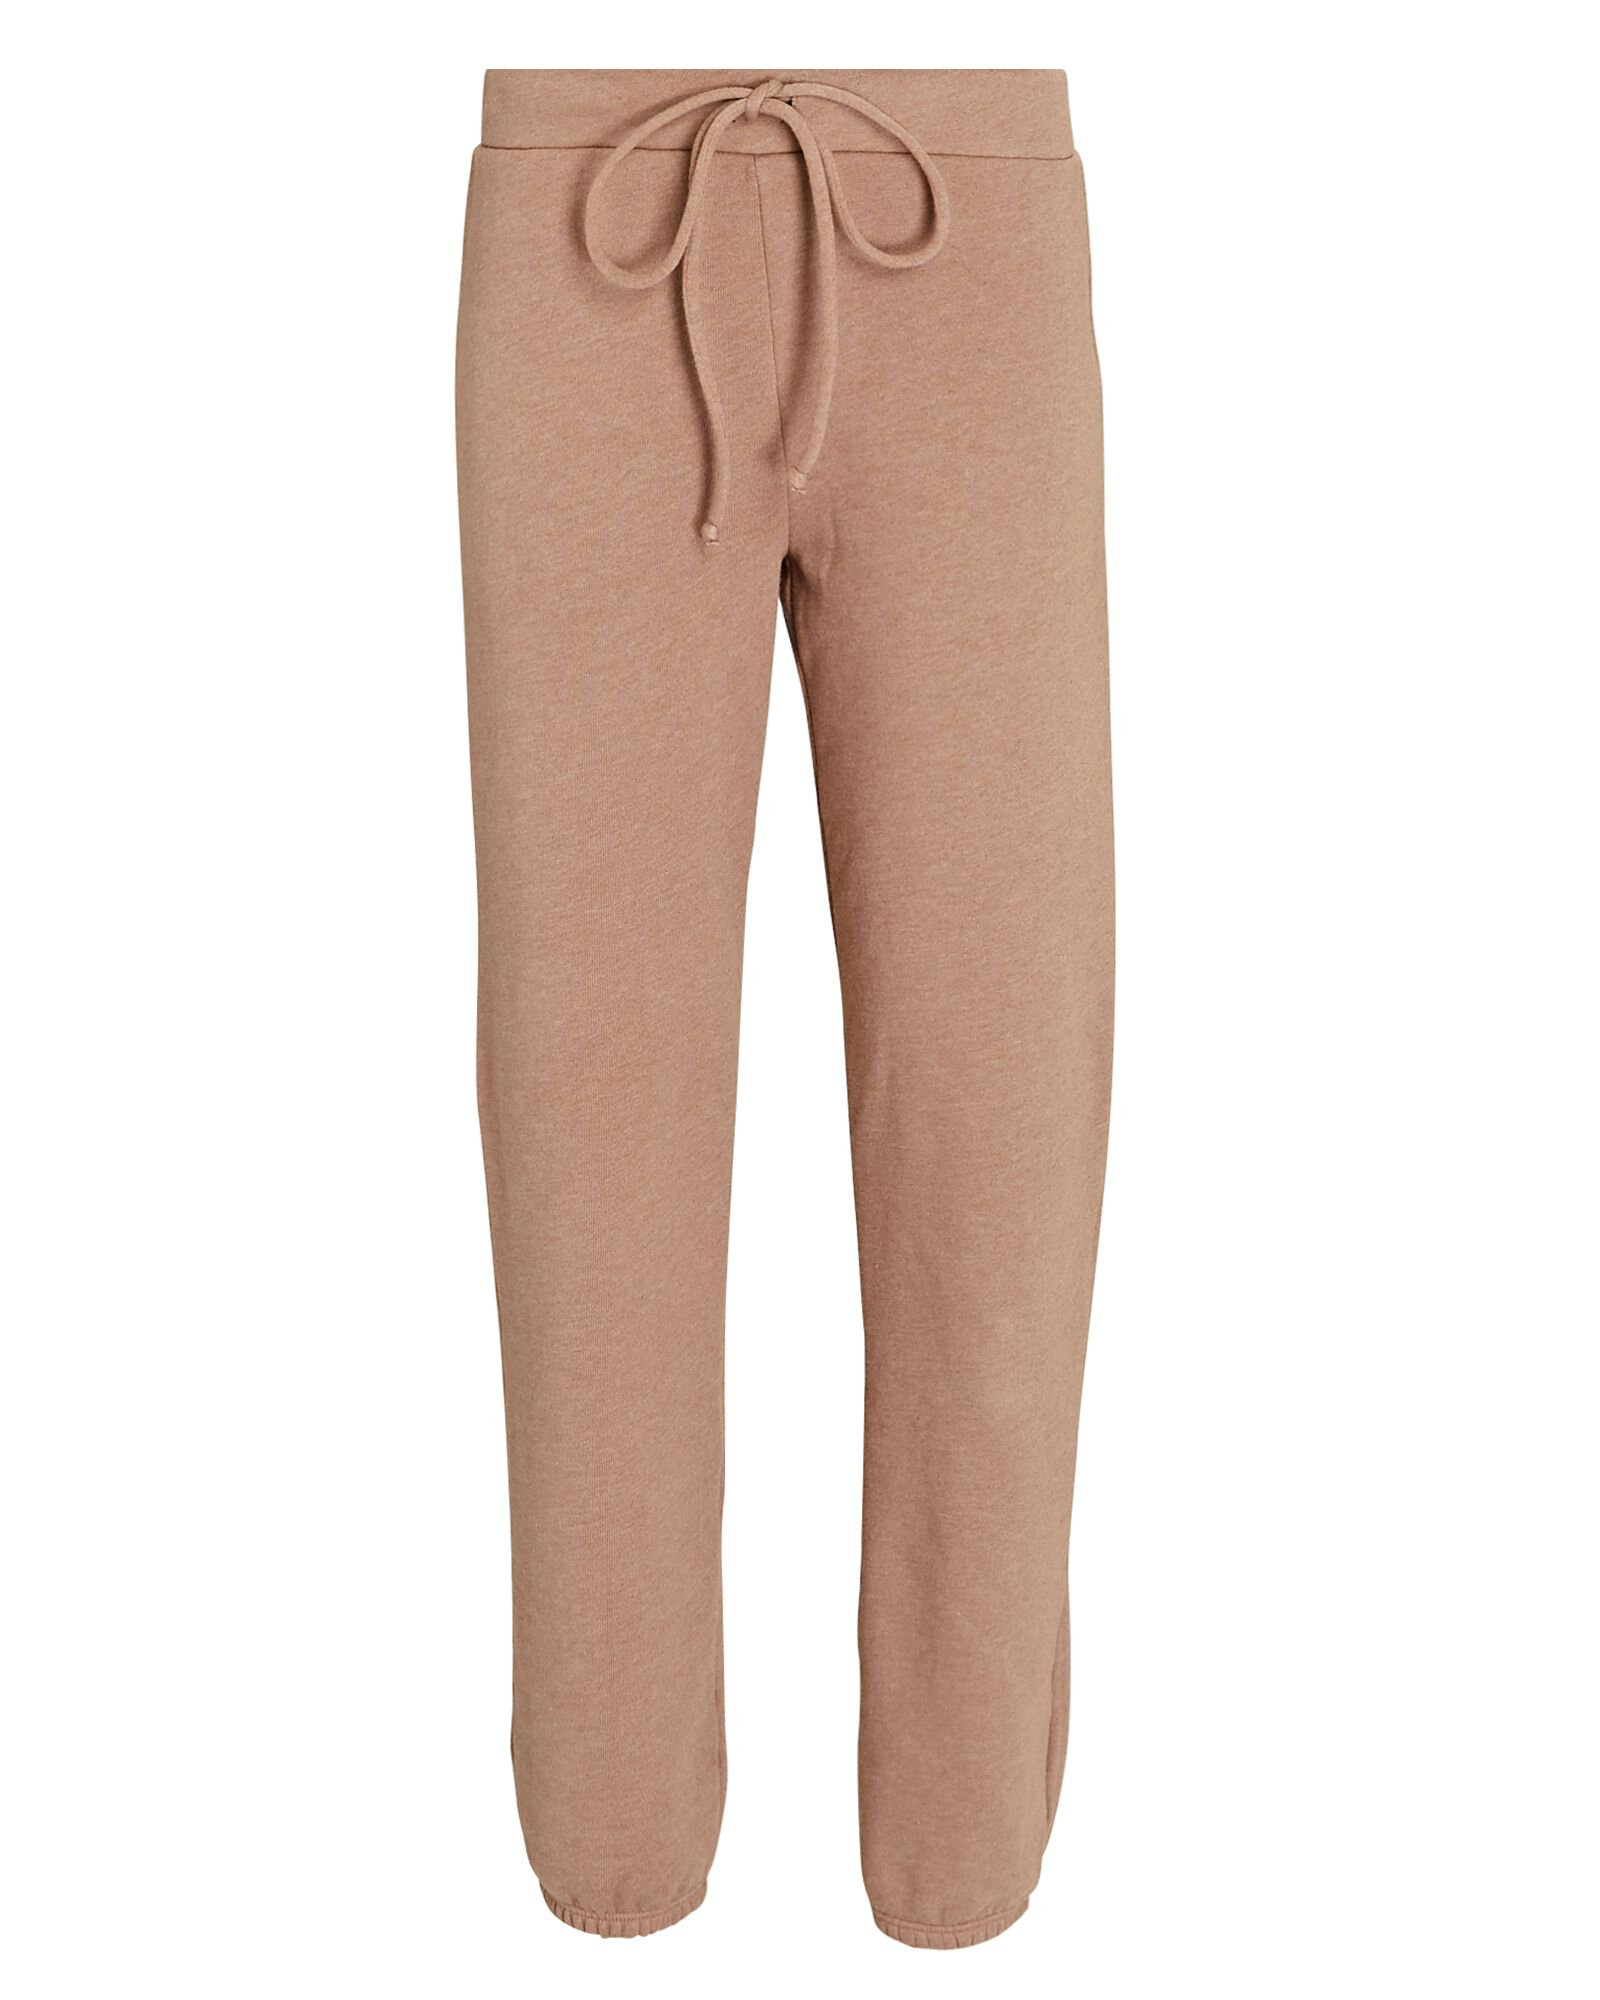 Cuffed Cotton-Blend Sweatpants, LIGHT BROWN, hi-res